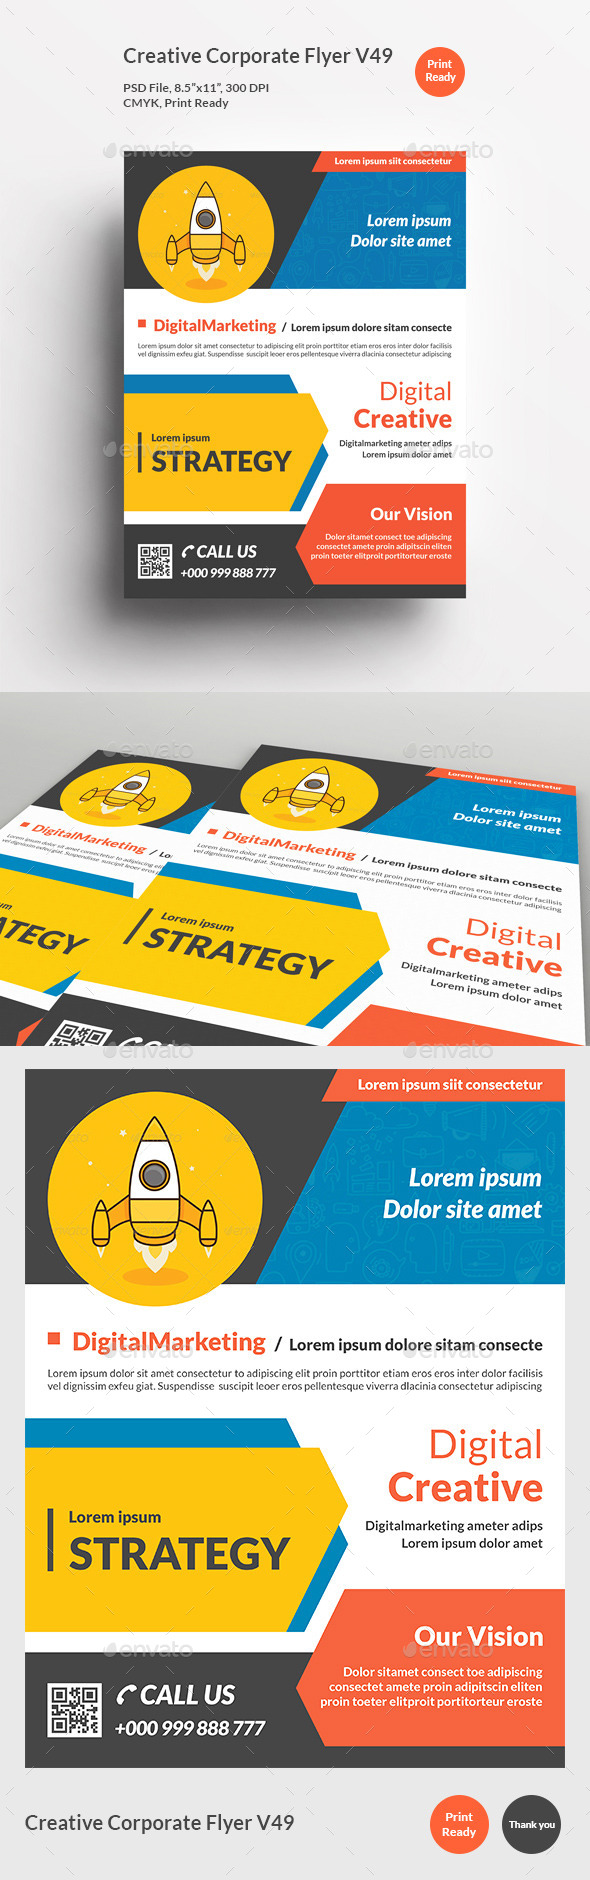 Creative Corporate Flyer V49